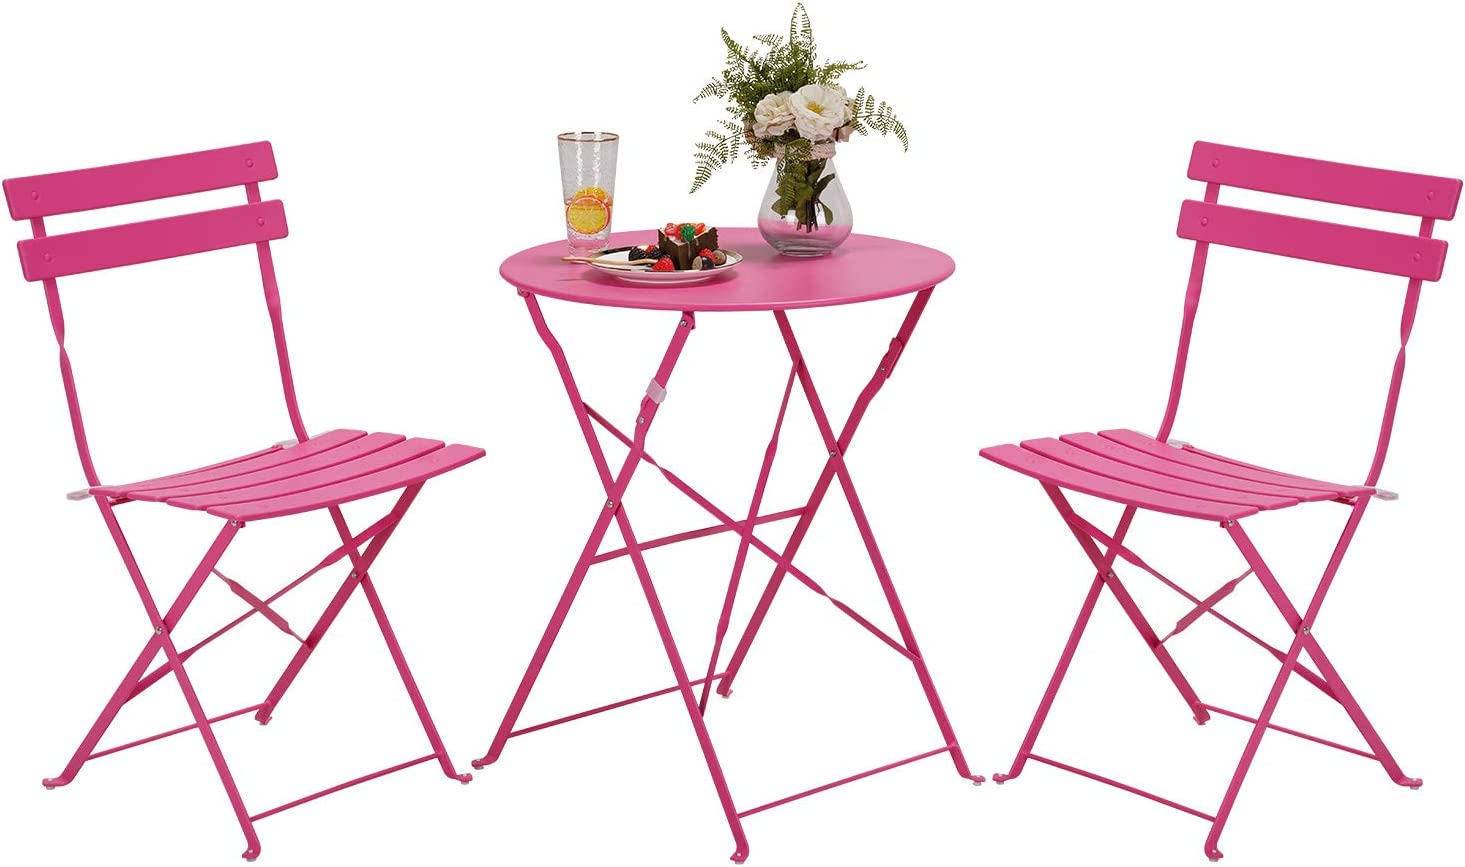 Grand patio Premium Steel Patio Bistro Set, Folding Outdoor Patio Furniture Sets, 3 Piece Patio Set of Foldable Patio Table and Chairs, Pink